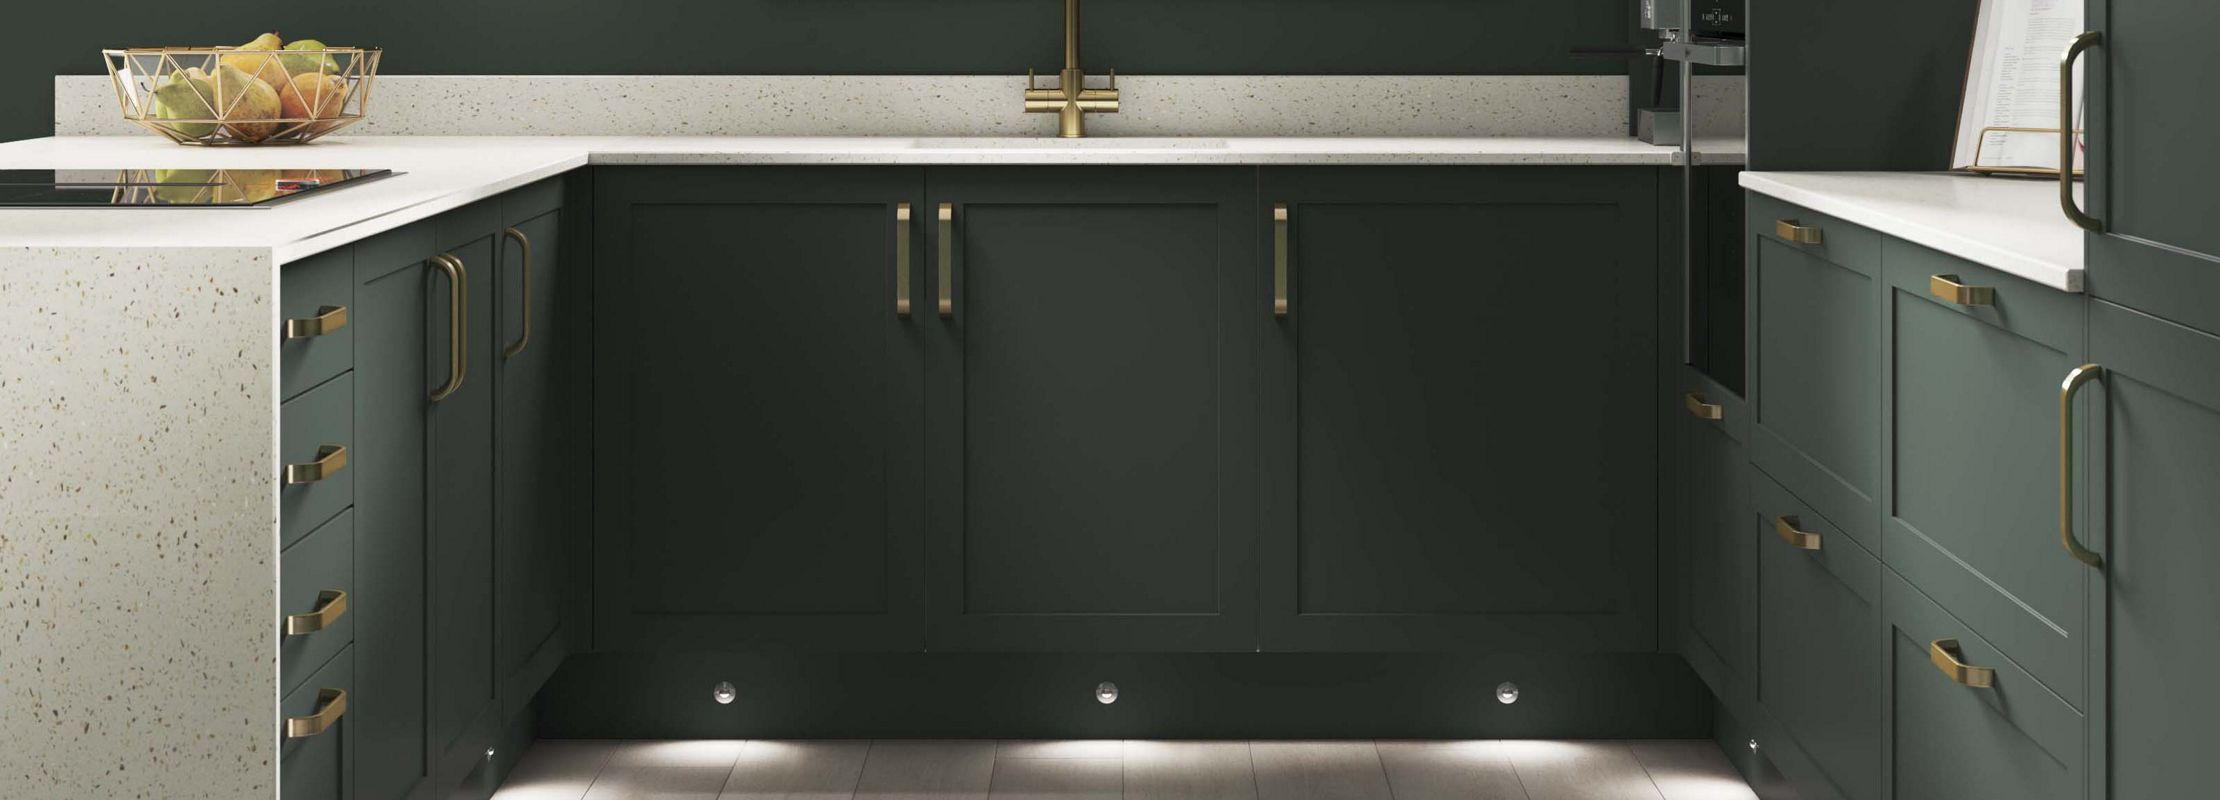 Kitchen handles buying guide